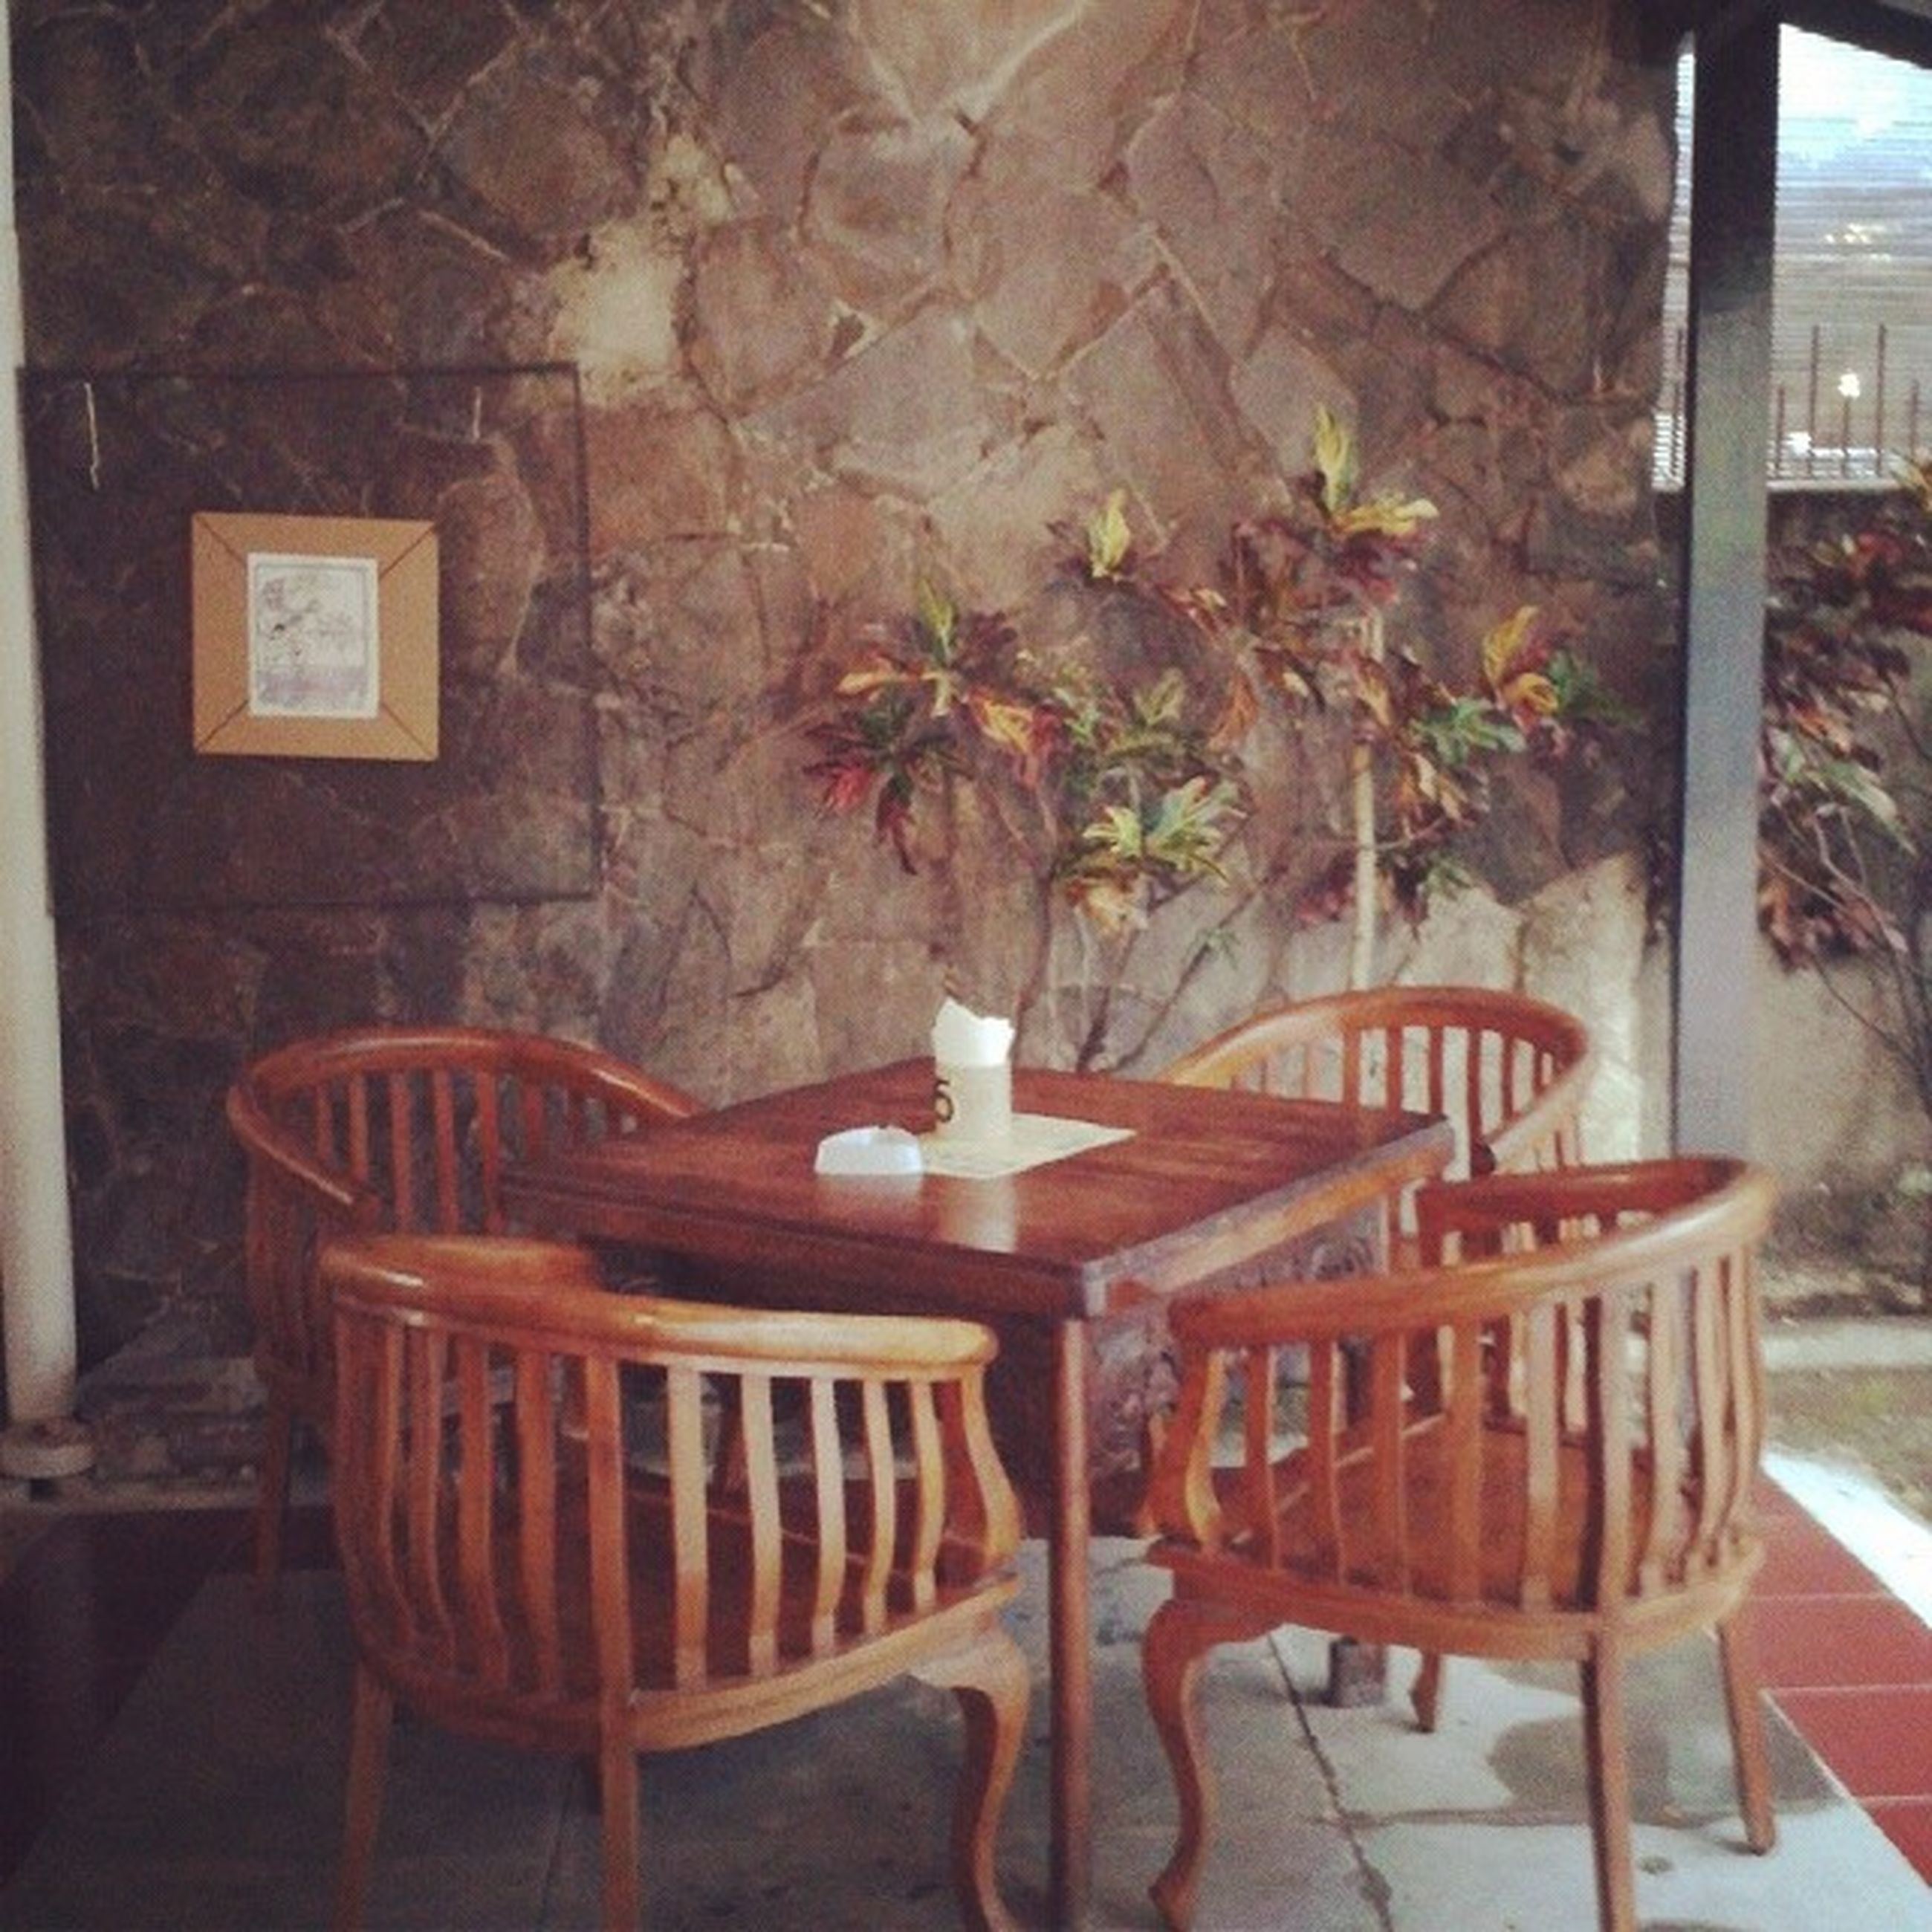 chair, indoors, absence, table, empty, furniture, seat, home interior, wall - building feature, architecture, built structure, illuminated, potted plant, wall, window, house, no people, lighting equipment, restaurant, wood - material